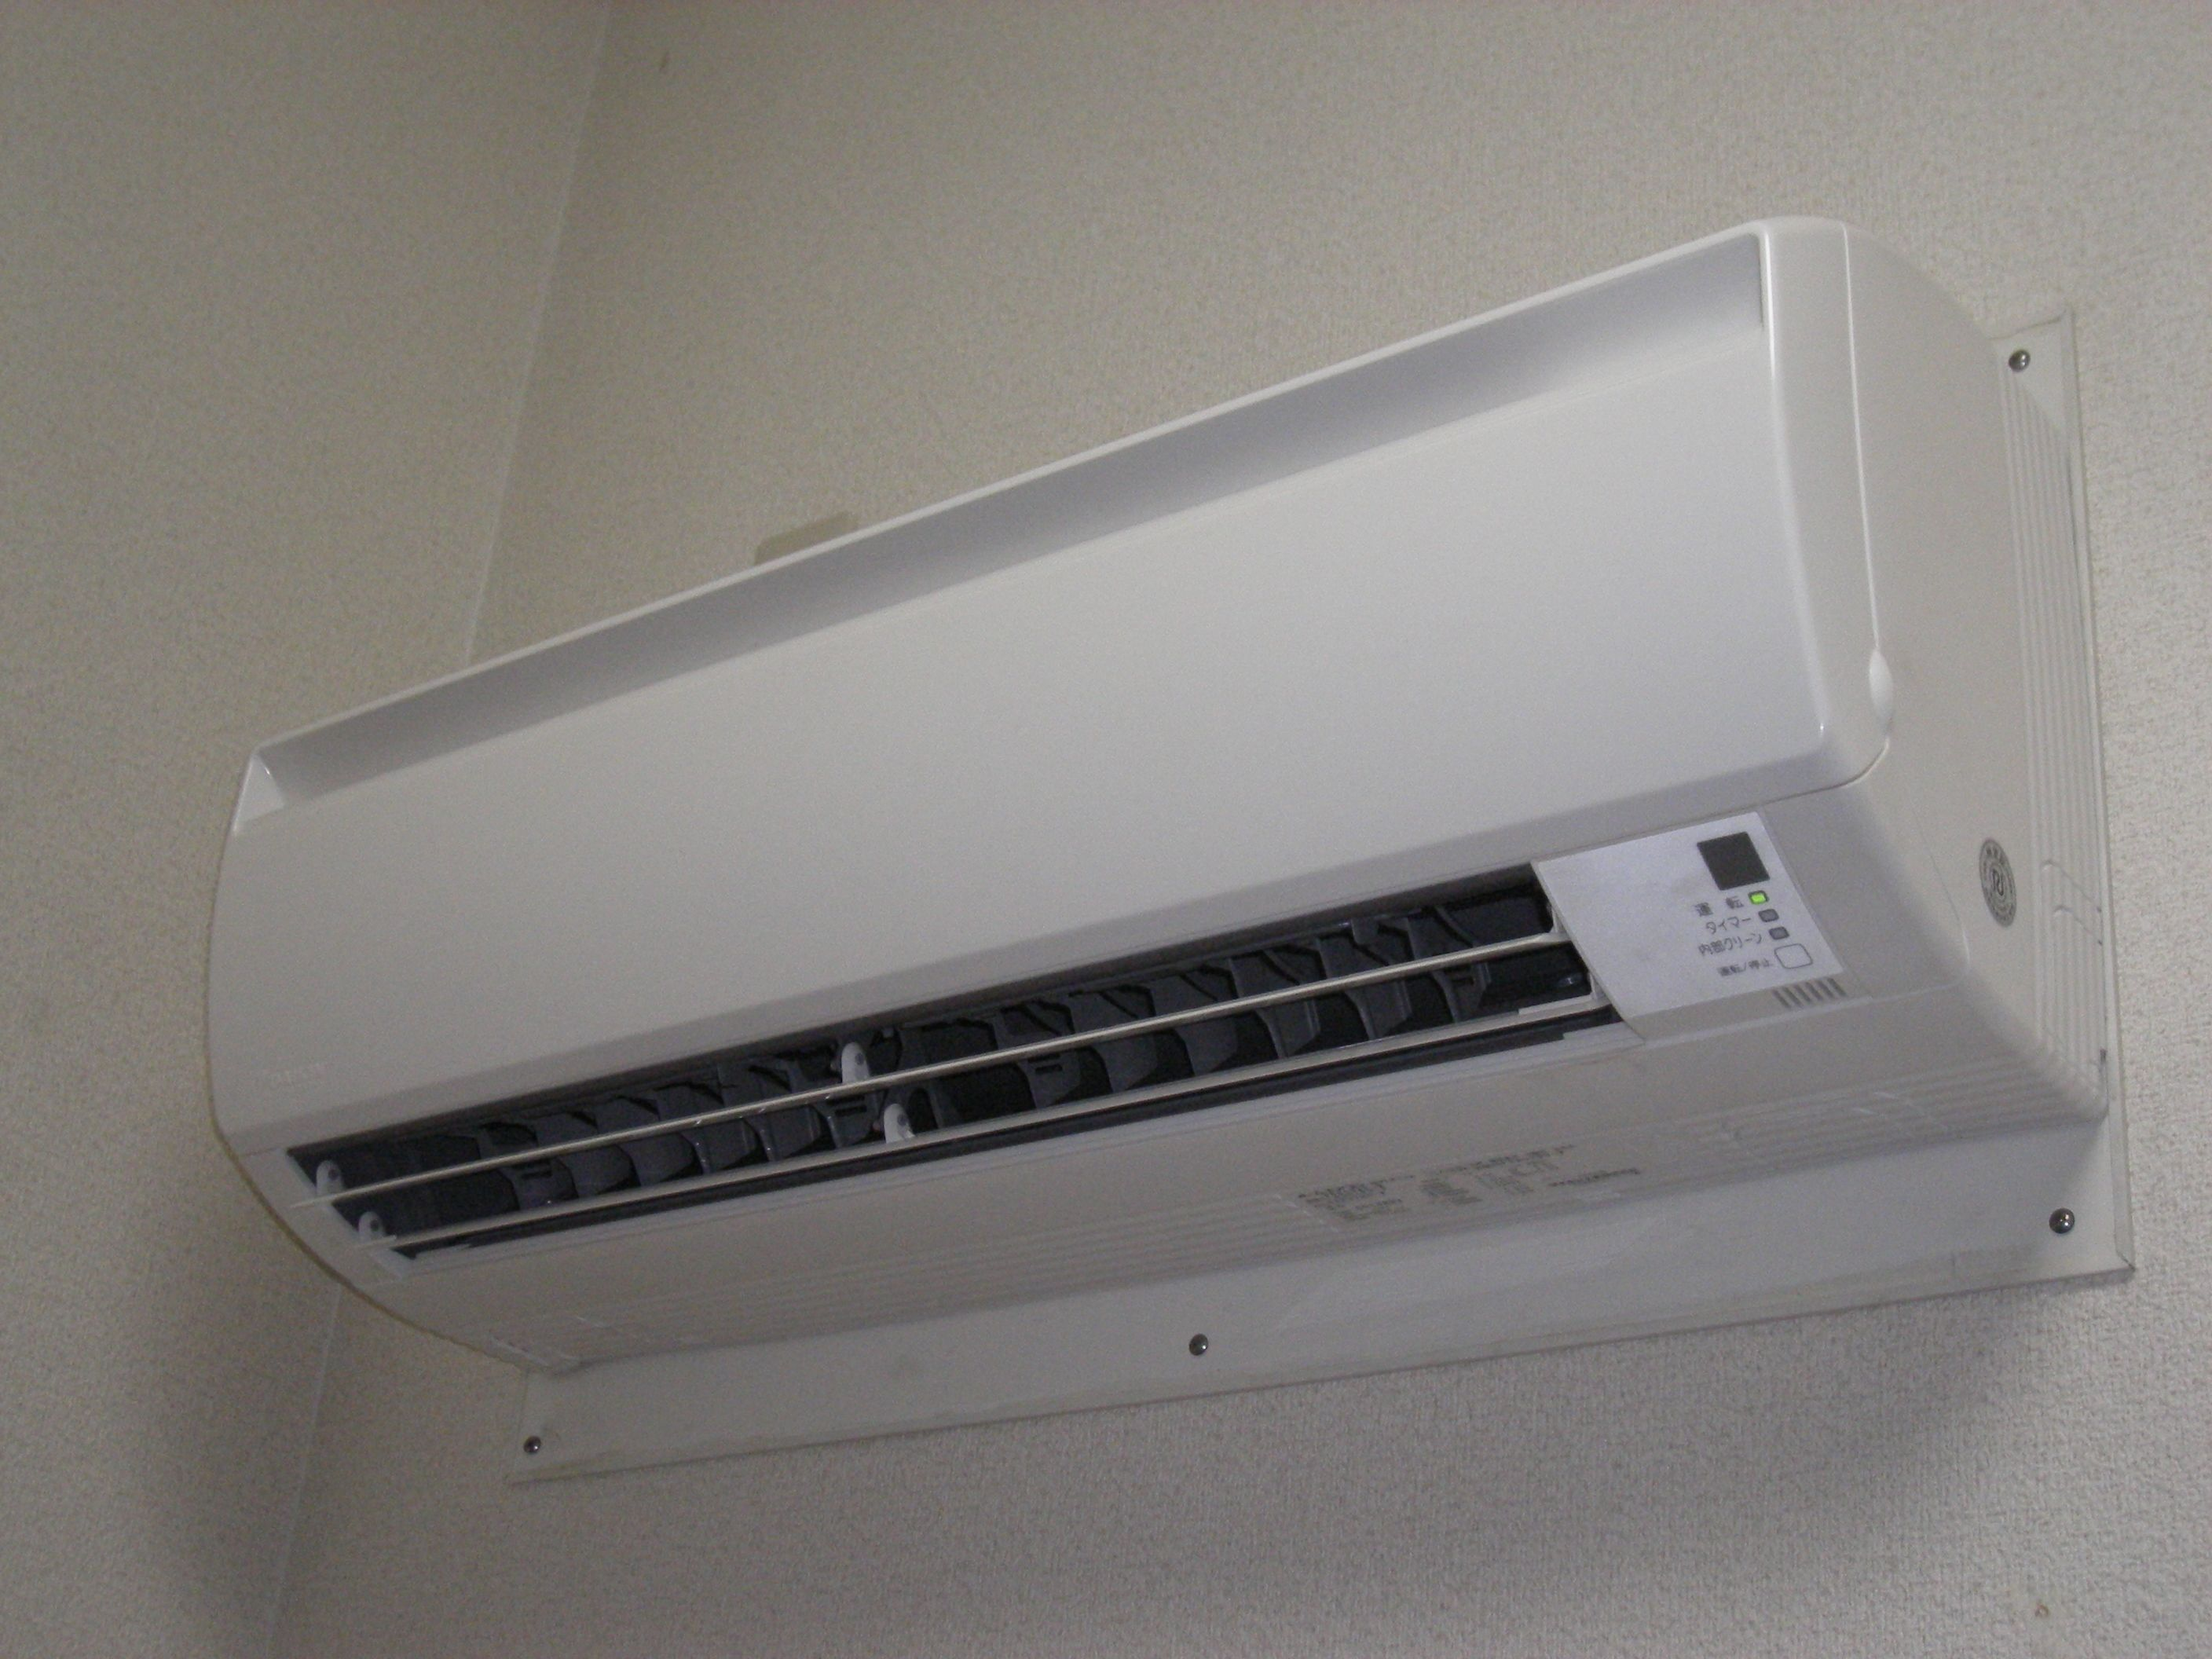 Regular Cleaning Of Reverse Cycle Air Conditioners Melbourne Will Increase Its Functionality Ductless Air Conditioner Wall Air Conditioner Air Conditioner